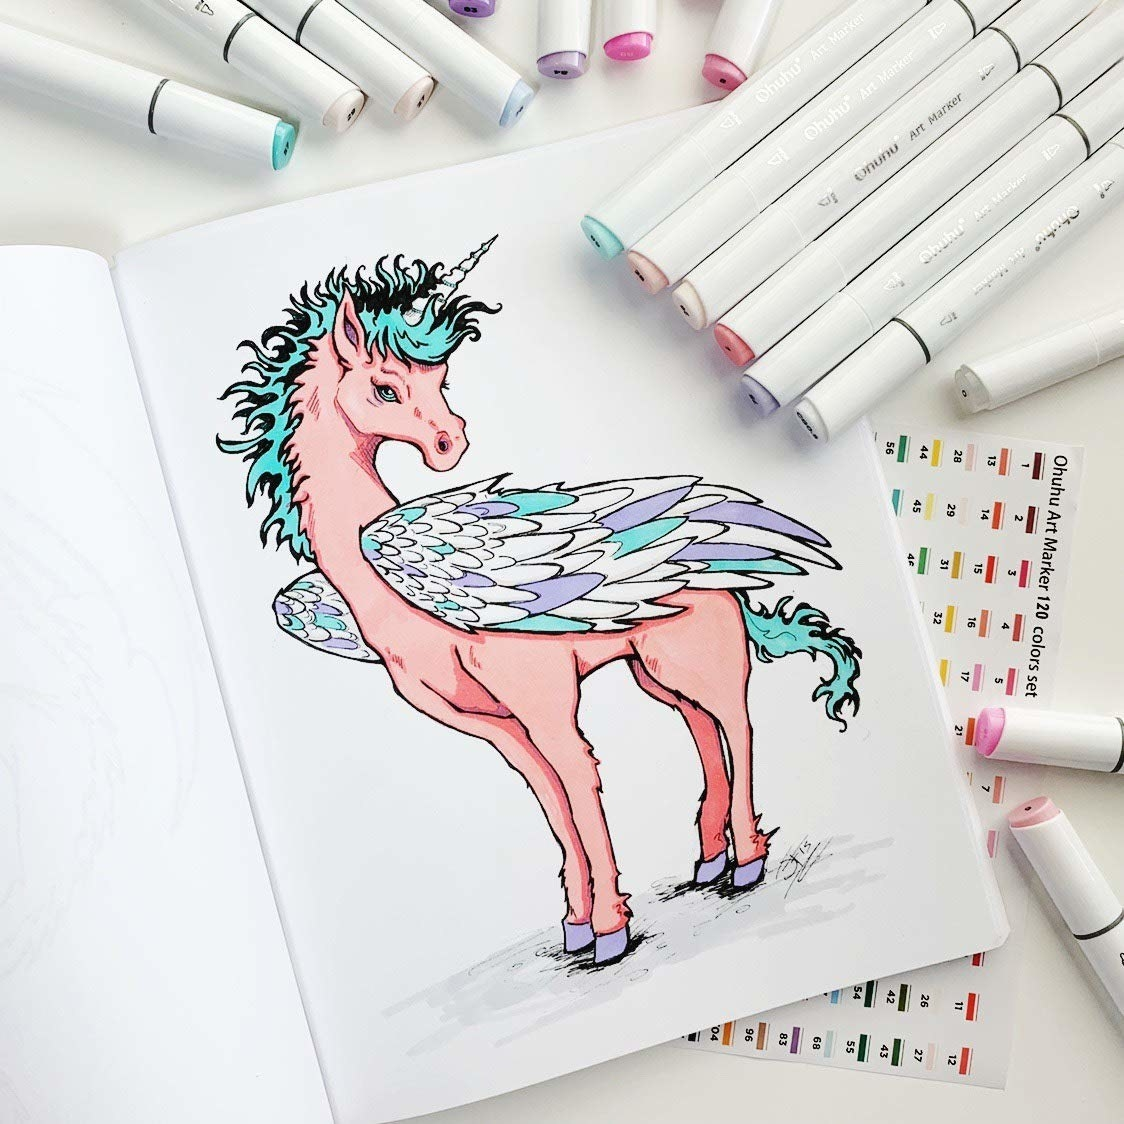 A picture of a unicorn that has been colored using the marker set around it